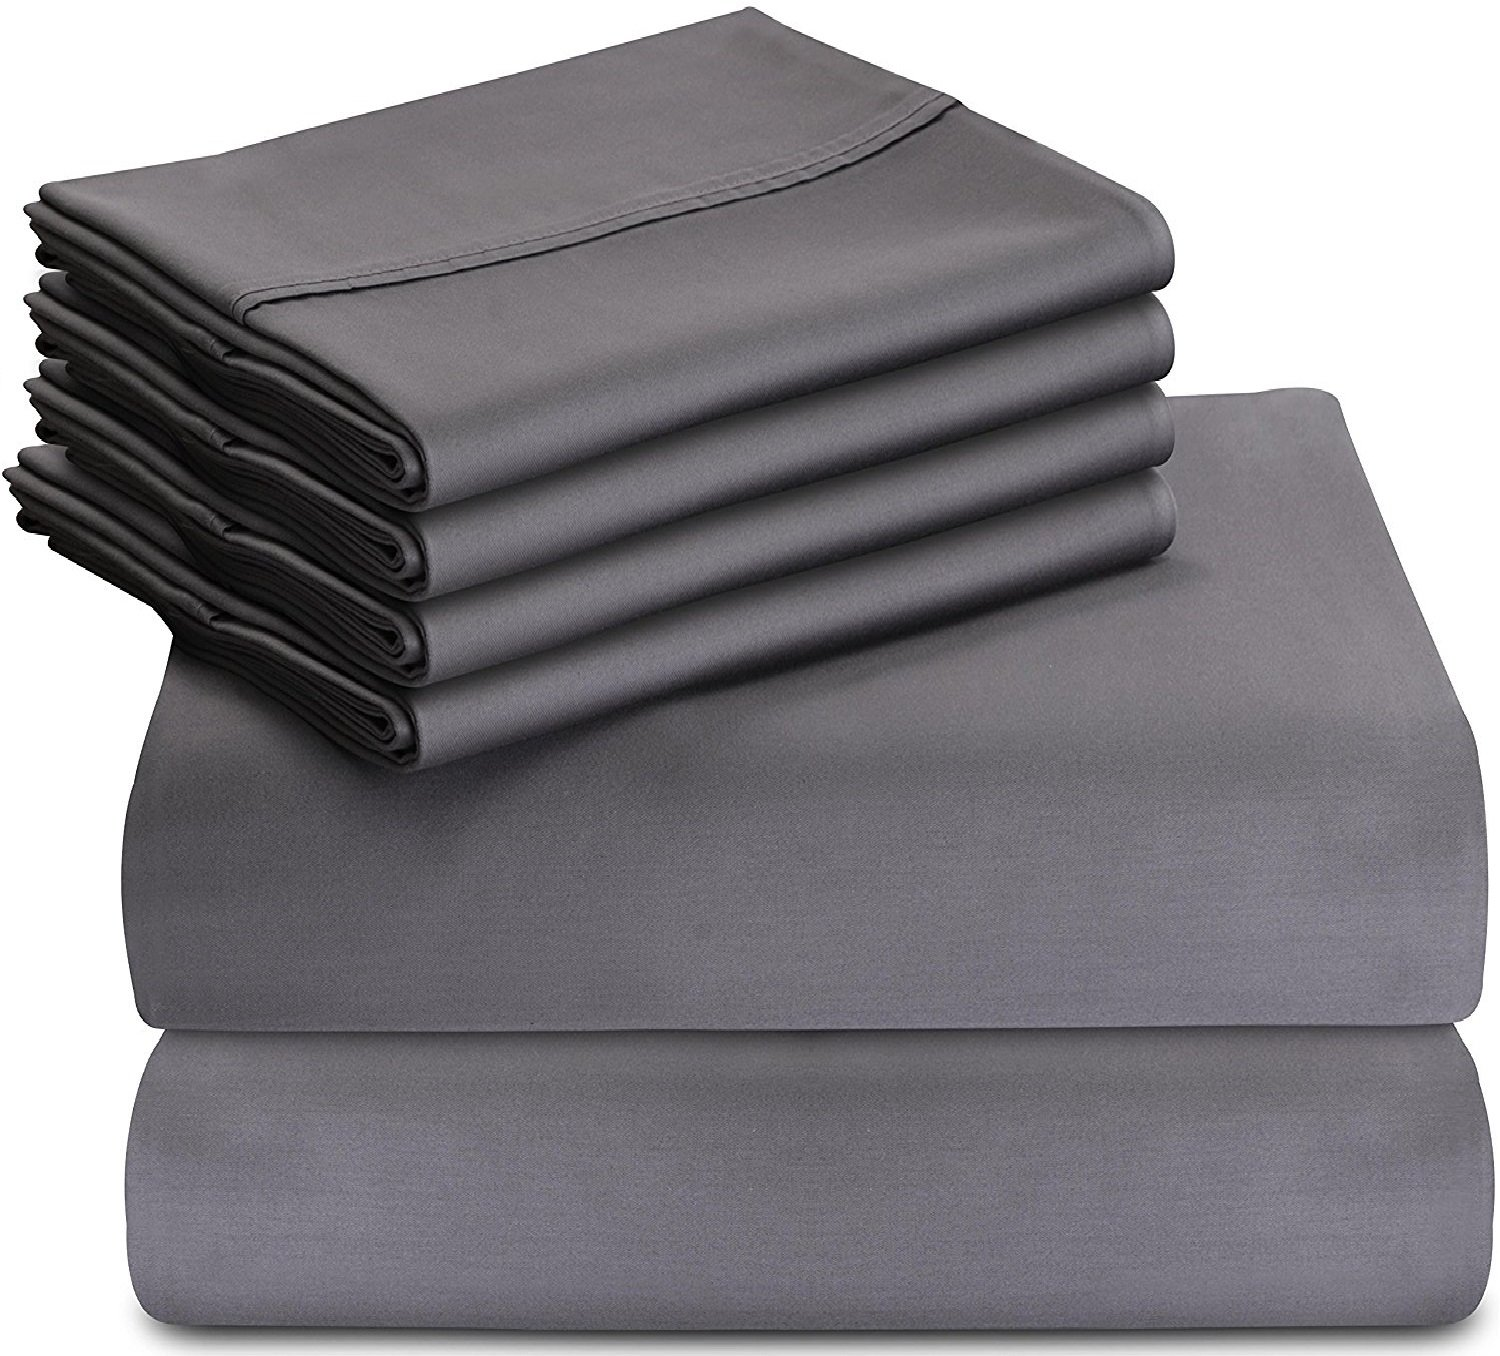 Utopia Bedding 6-Piece Bed Sheet Set (Queen - Grey) with 4 Pillowcases - Soft Brushed Microfiber Wrinkle, Fade and Stain Resistant Sheet Set - Includes 1 flat sheet measuring 90 by 102 inches with a 4 inches self-hem; 1 fitted sheet measuring 60 by 80 inches with a 16 inches box and 4 pillowcases measuring 20 by 30 inches each Brushed microfiber fabric makes the sheet set exceptionally soft Smooth feel of the sheet is very cozy which keeps you cool during summers and warm during winters - sheet-sets, bedroom-sheets-comforters, bedroom - 81KMB e2XaL -